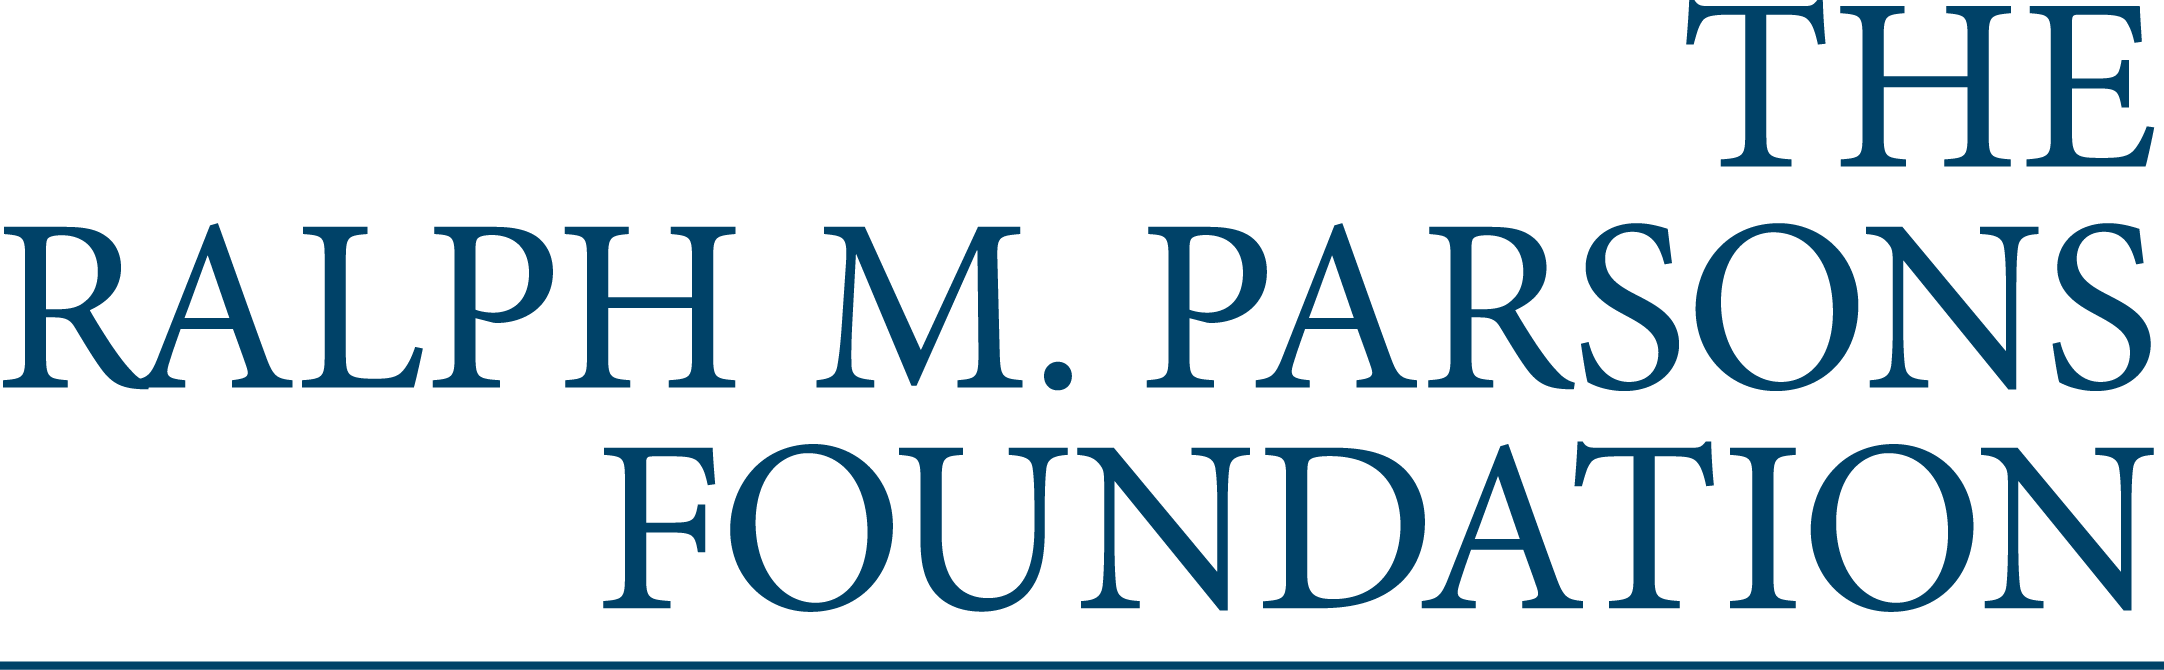 The Ralph M. Parsons Foundation logo